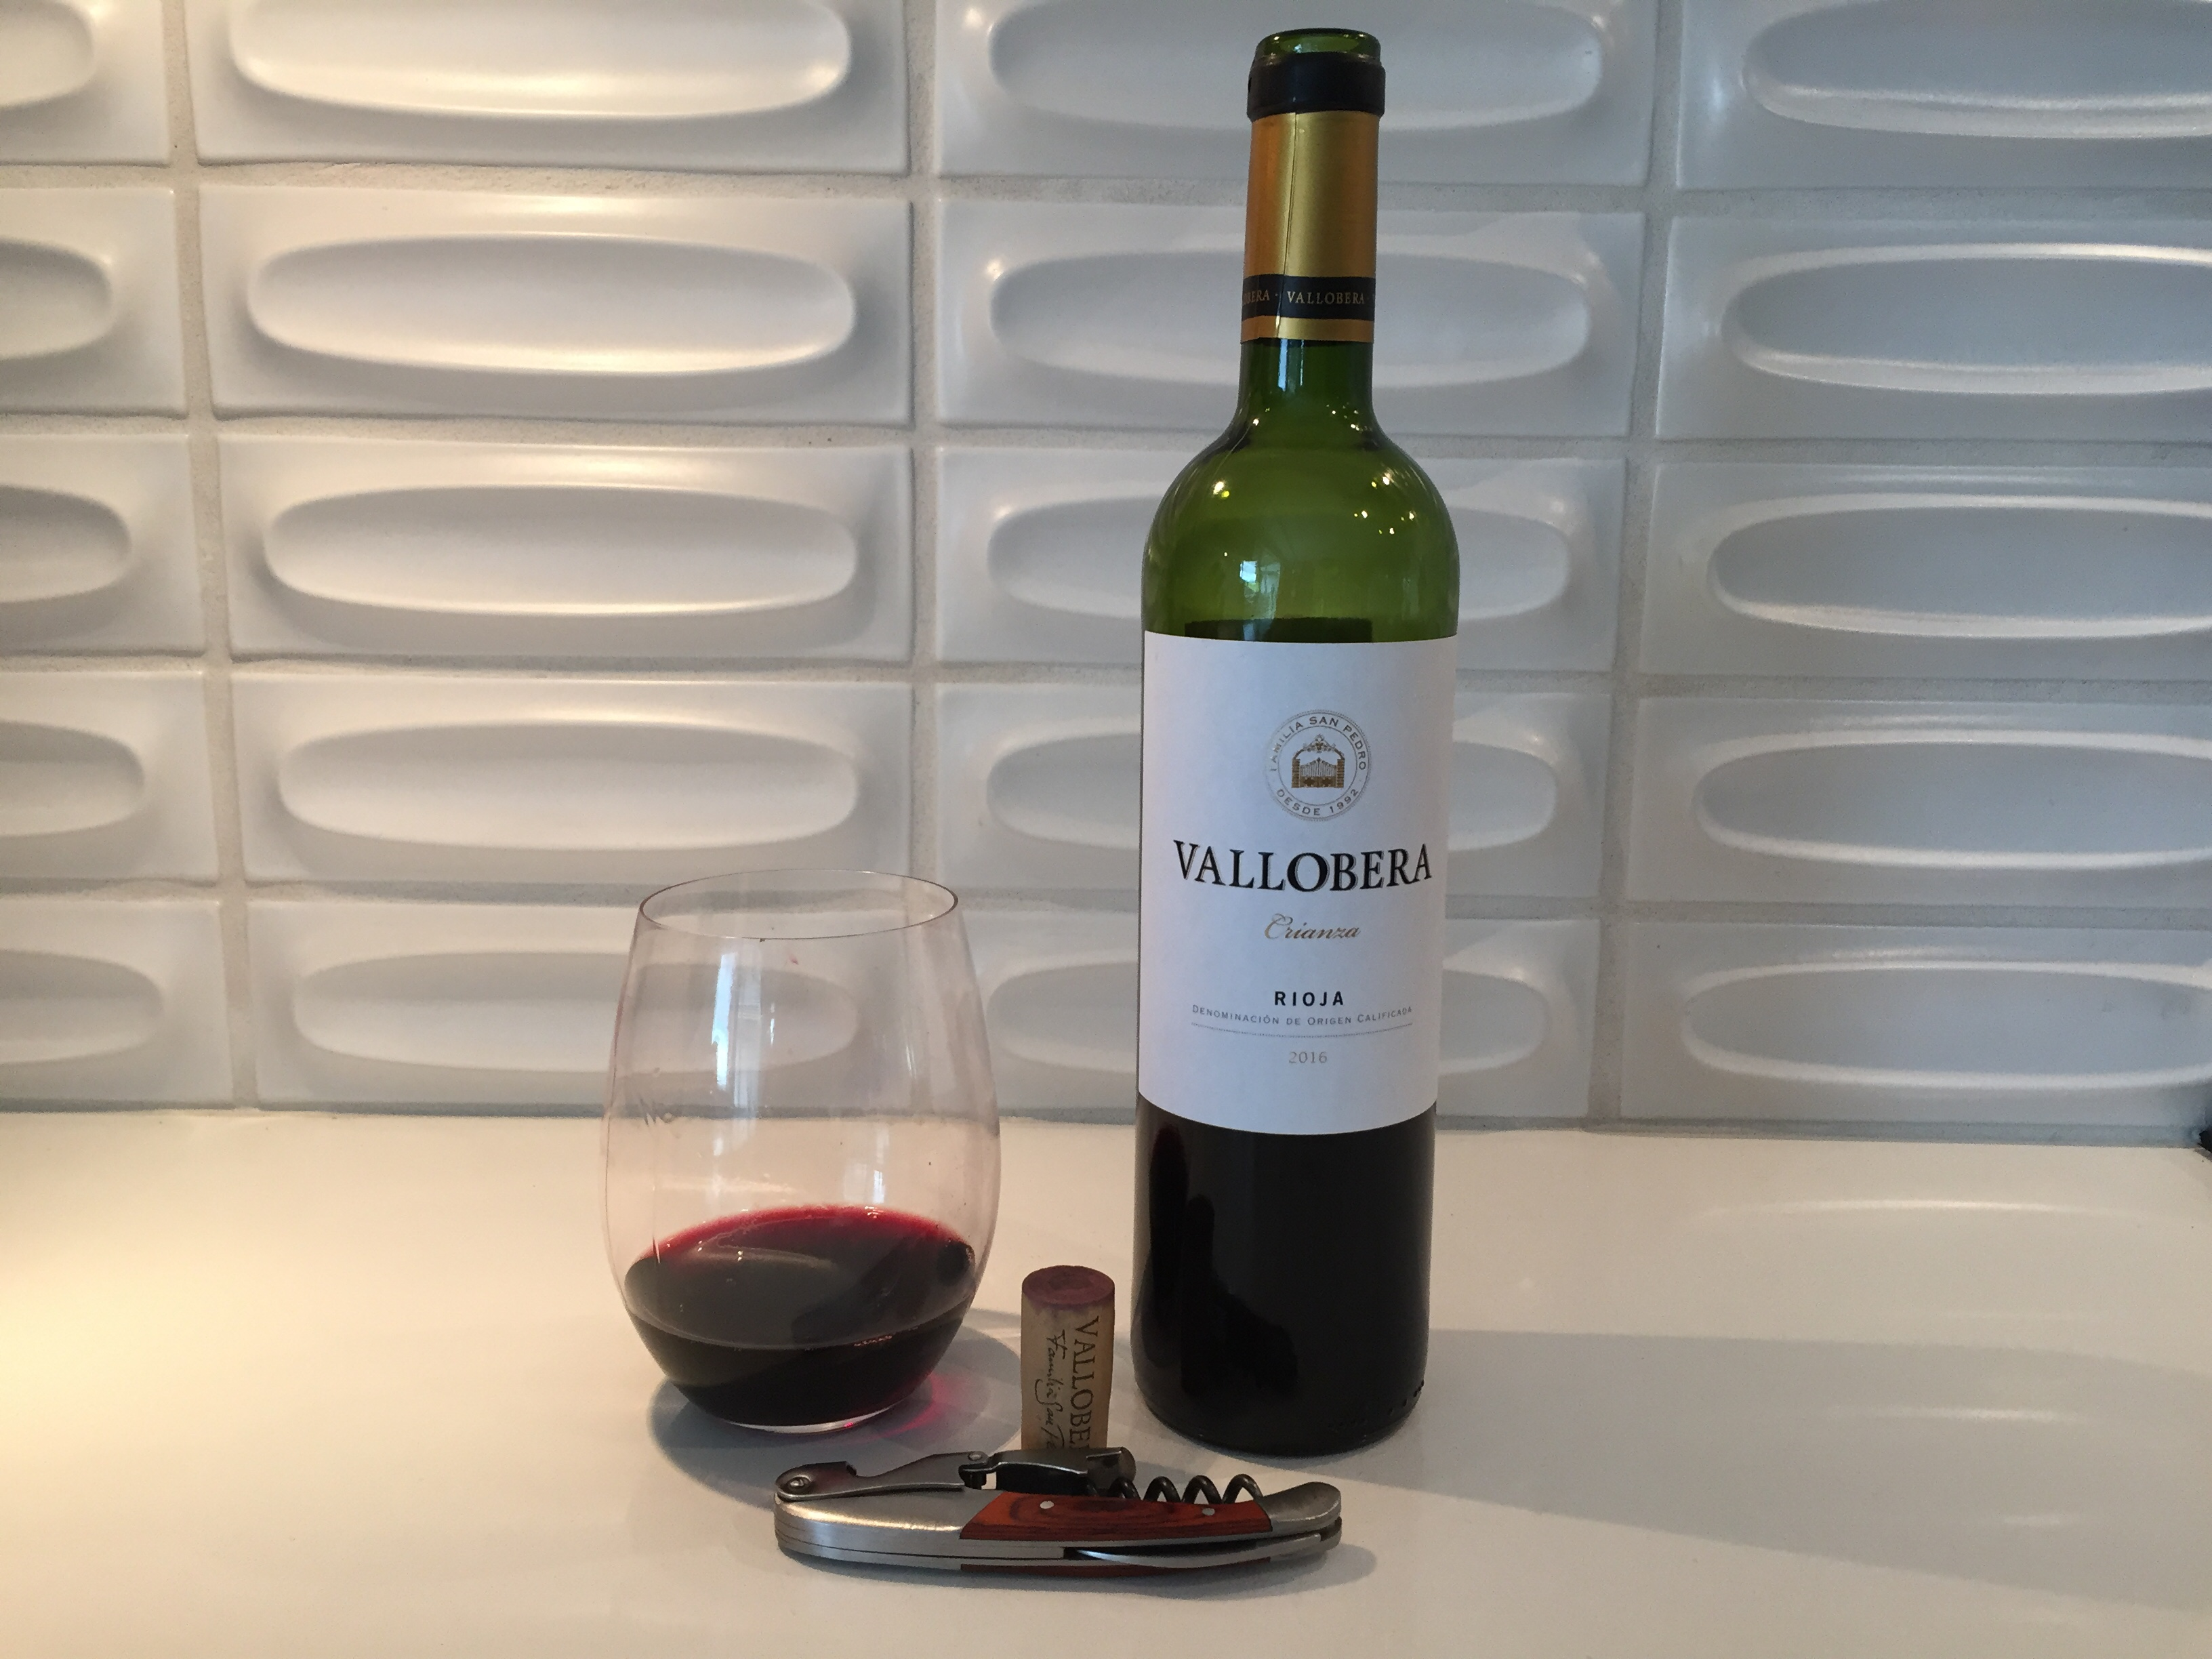 Glass and bottle of 2016 Vallobera Crianza Rioja